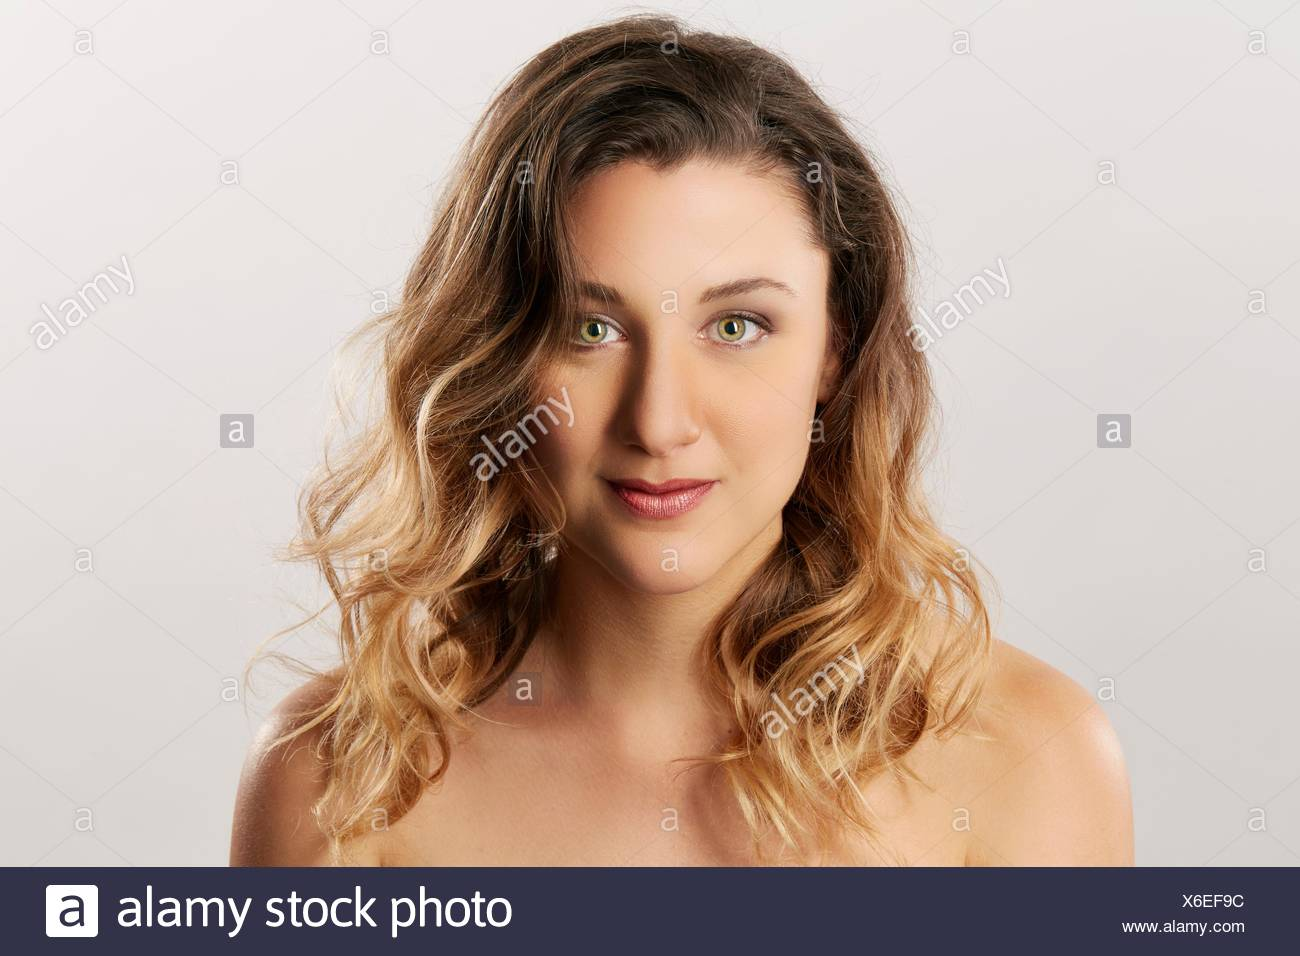 Young woman with bare shoulders - Stock Image